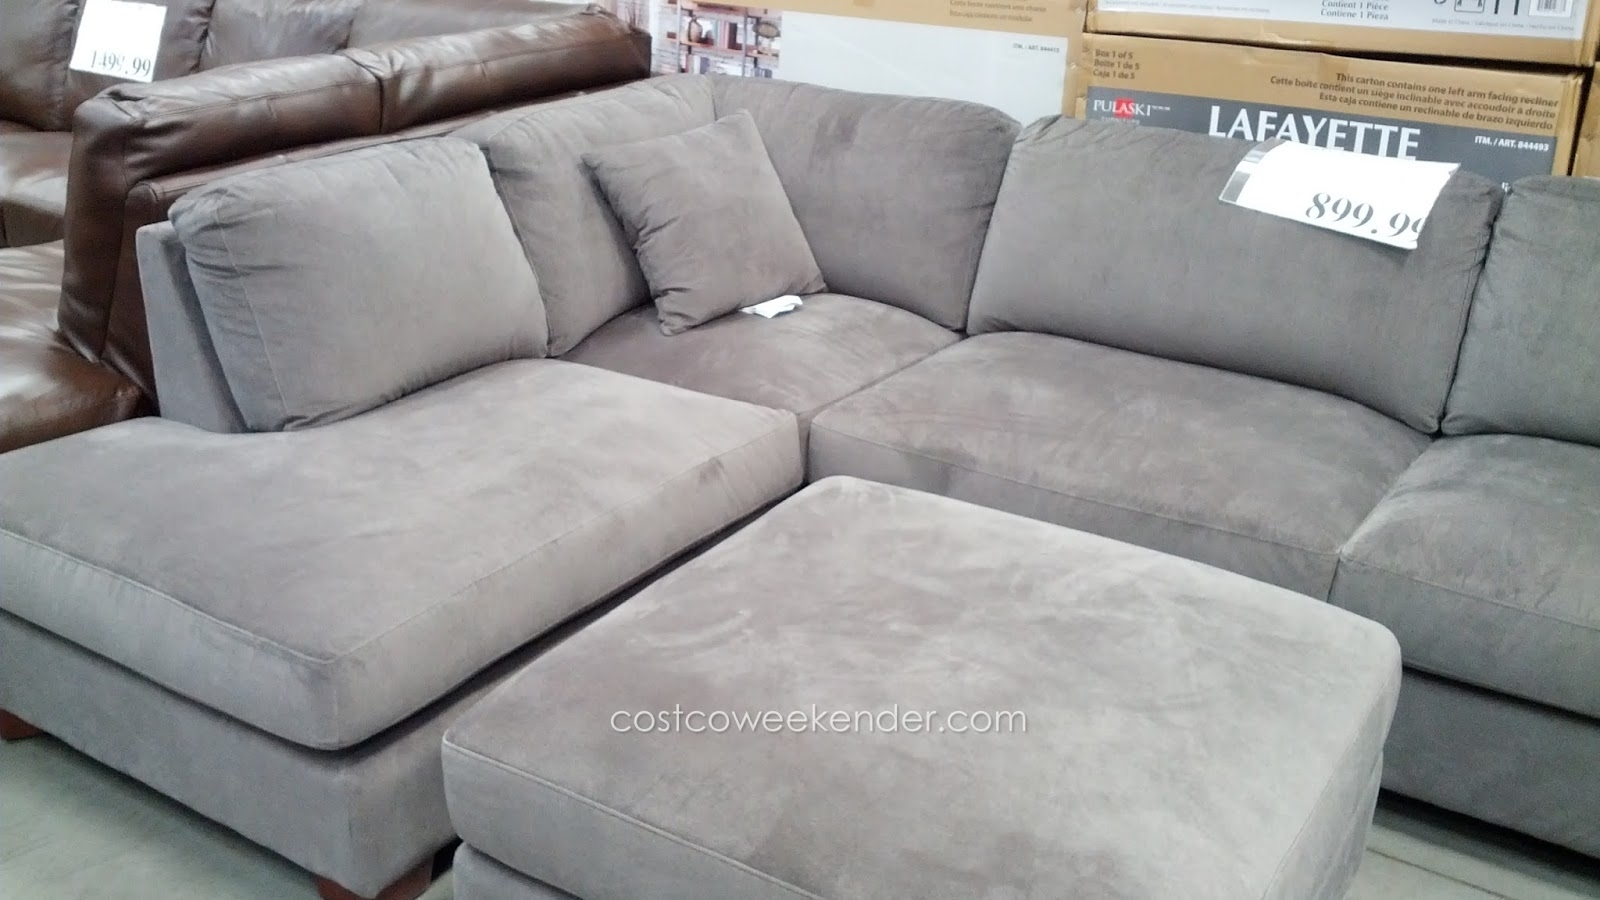 Sectional Sofa Design: Lovely Sectional Sofas Costco Leather Sofas For Sectional Sofas At Costco (View 5 of 10)